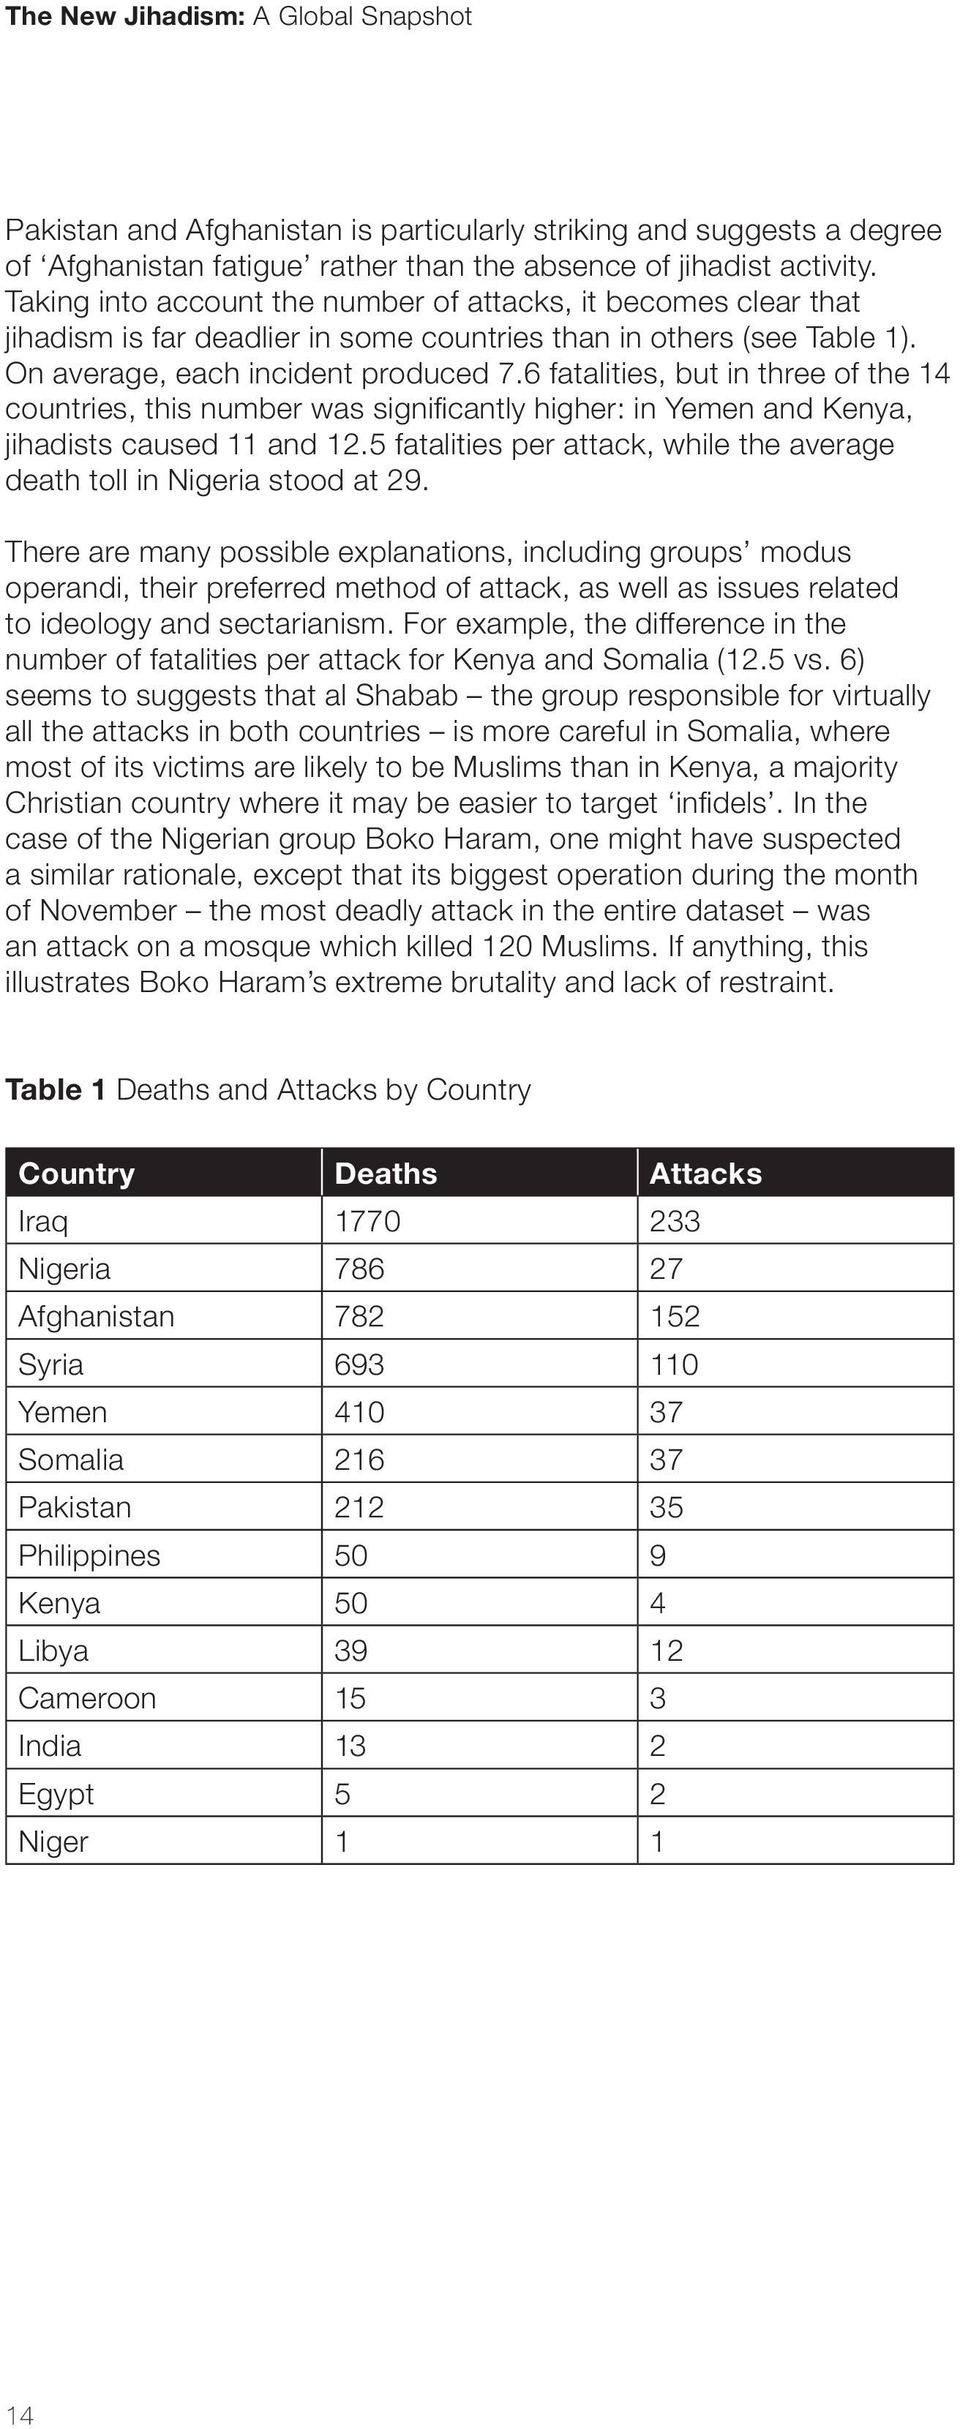 6 fatalities, but in three of the 14 countries, this number was significantly higher: in Yemen and Kenya, jihadists caused 11 and 12.